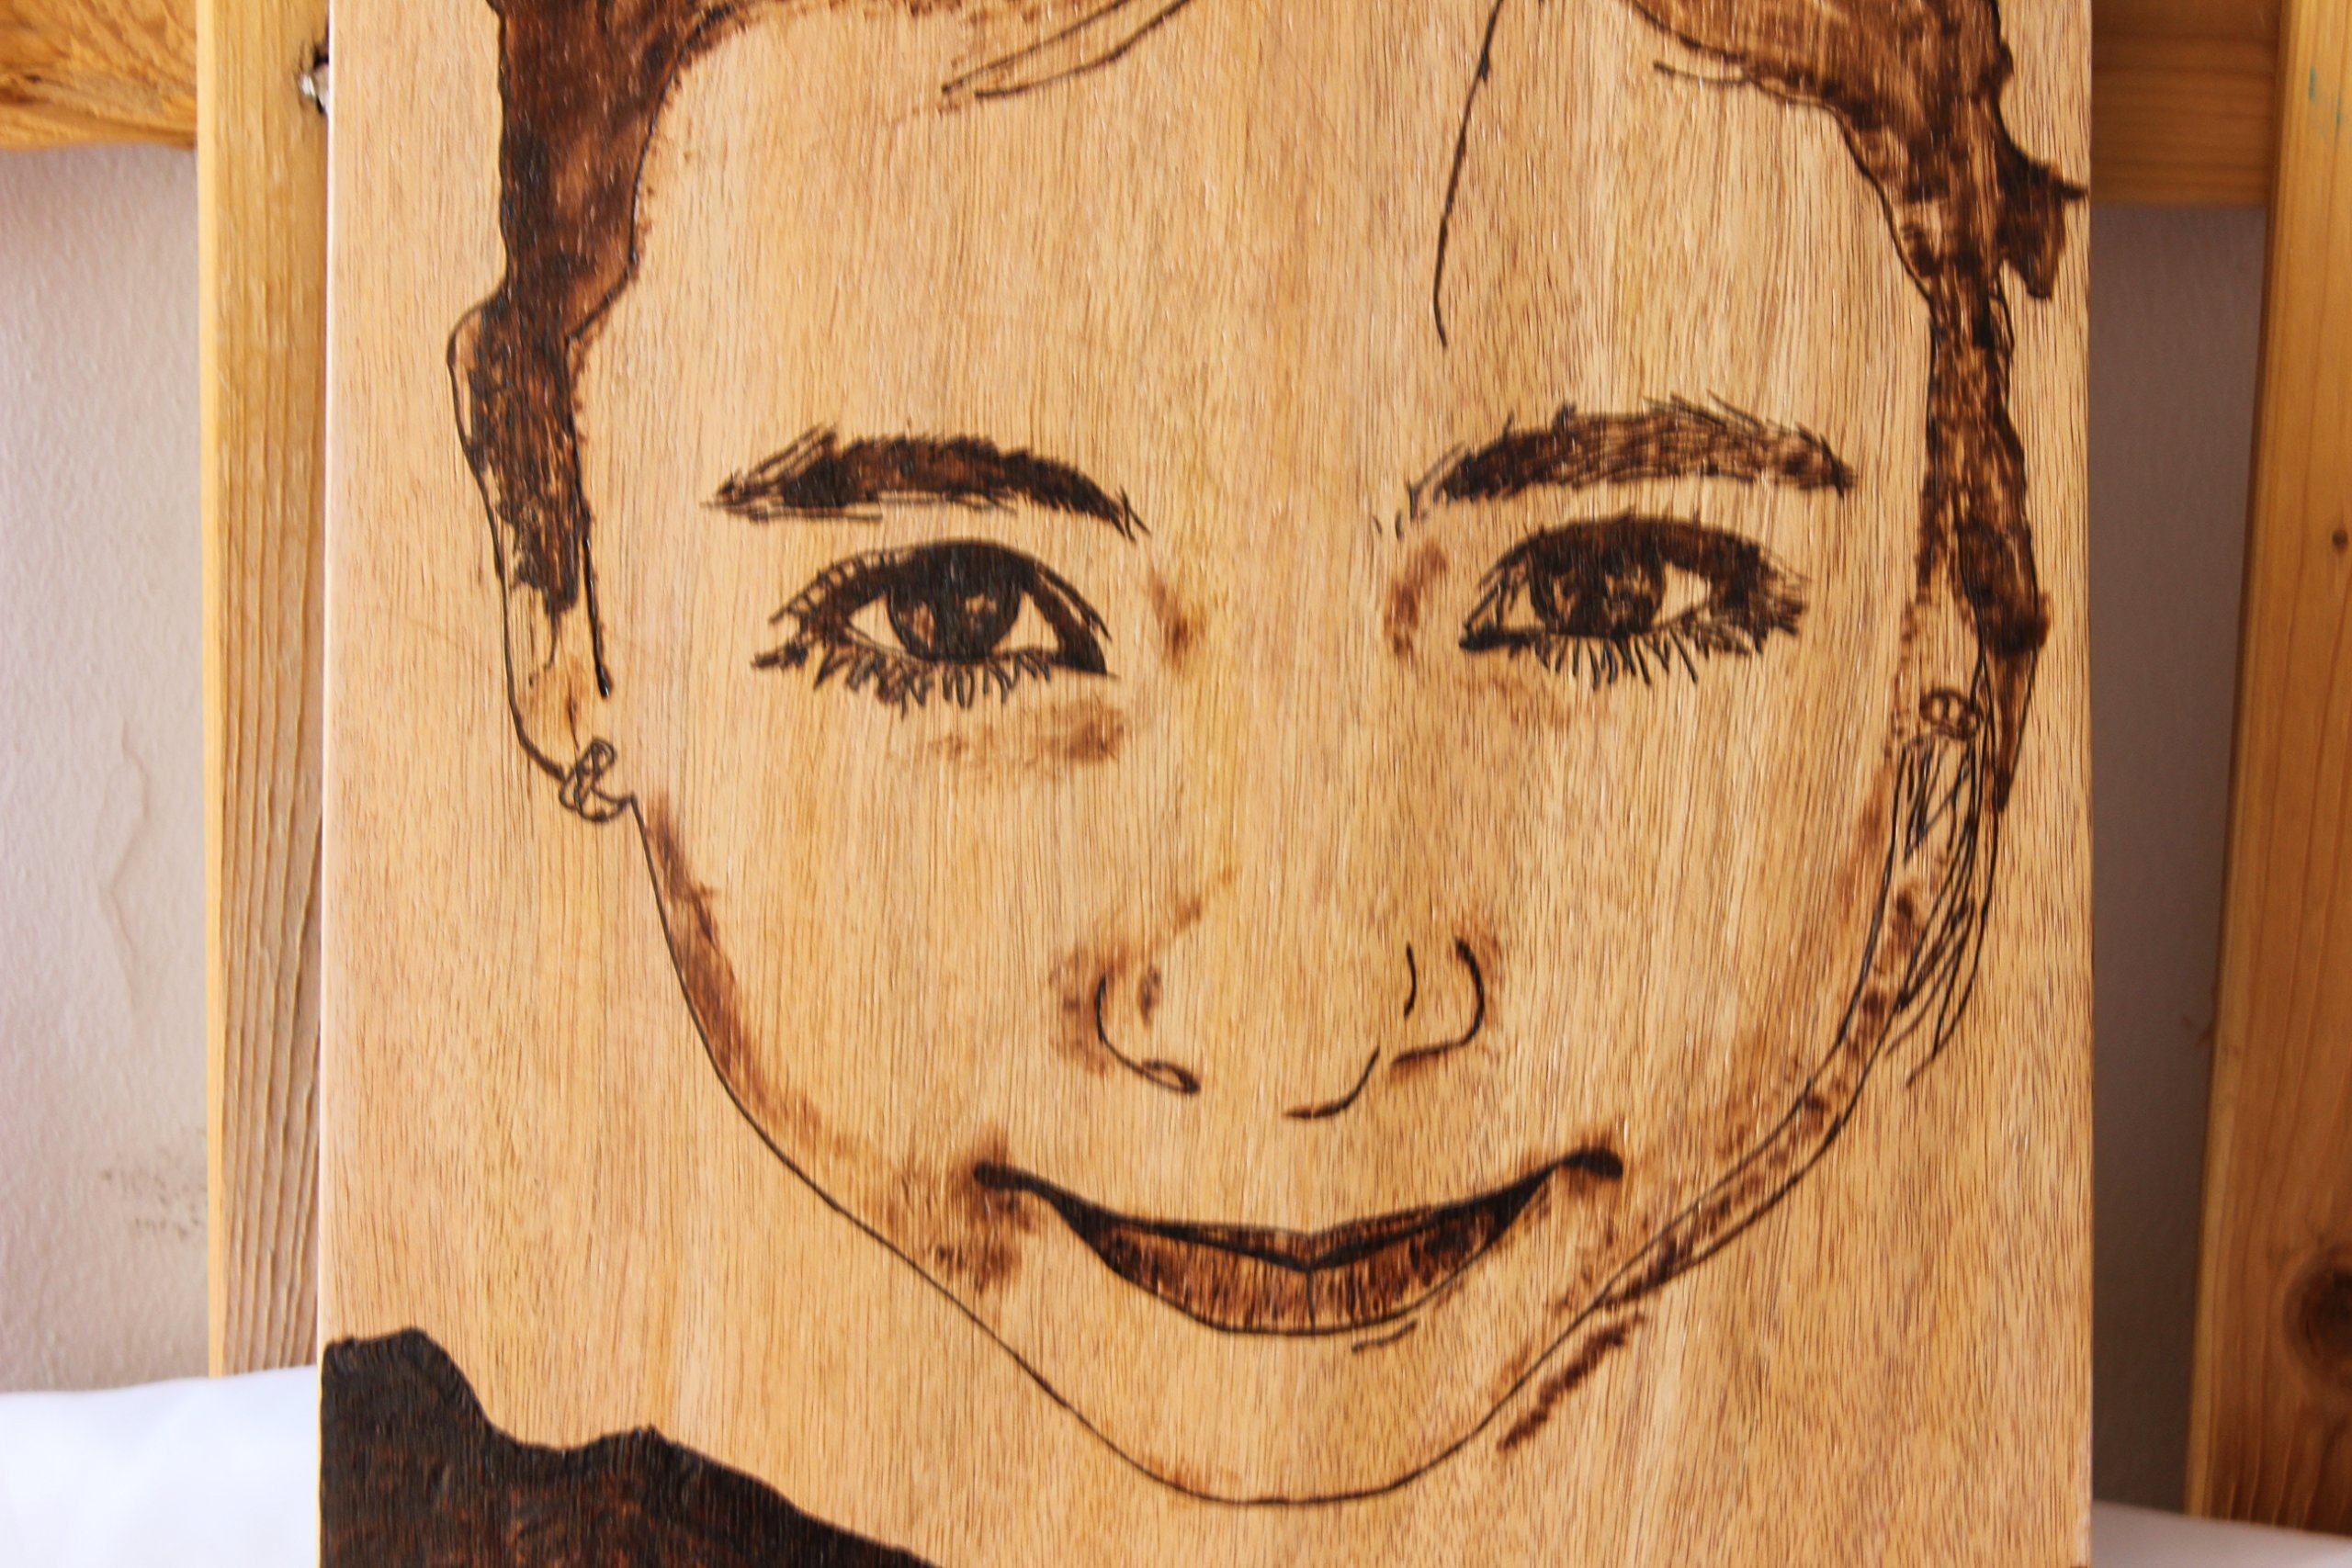 Custom Portrait on wood - Pyrography Wood burning personalized baby girl boy man woman portrait - birthday present for grandparents